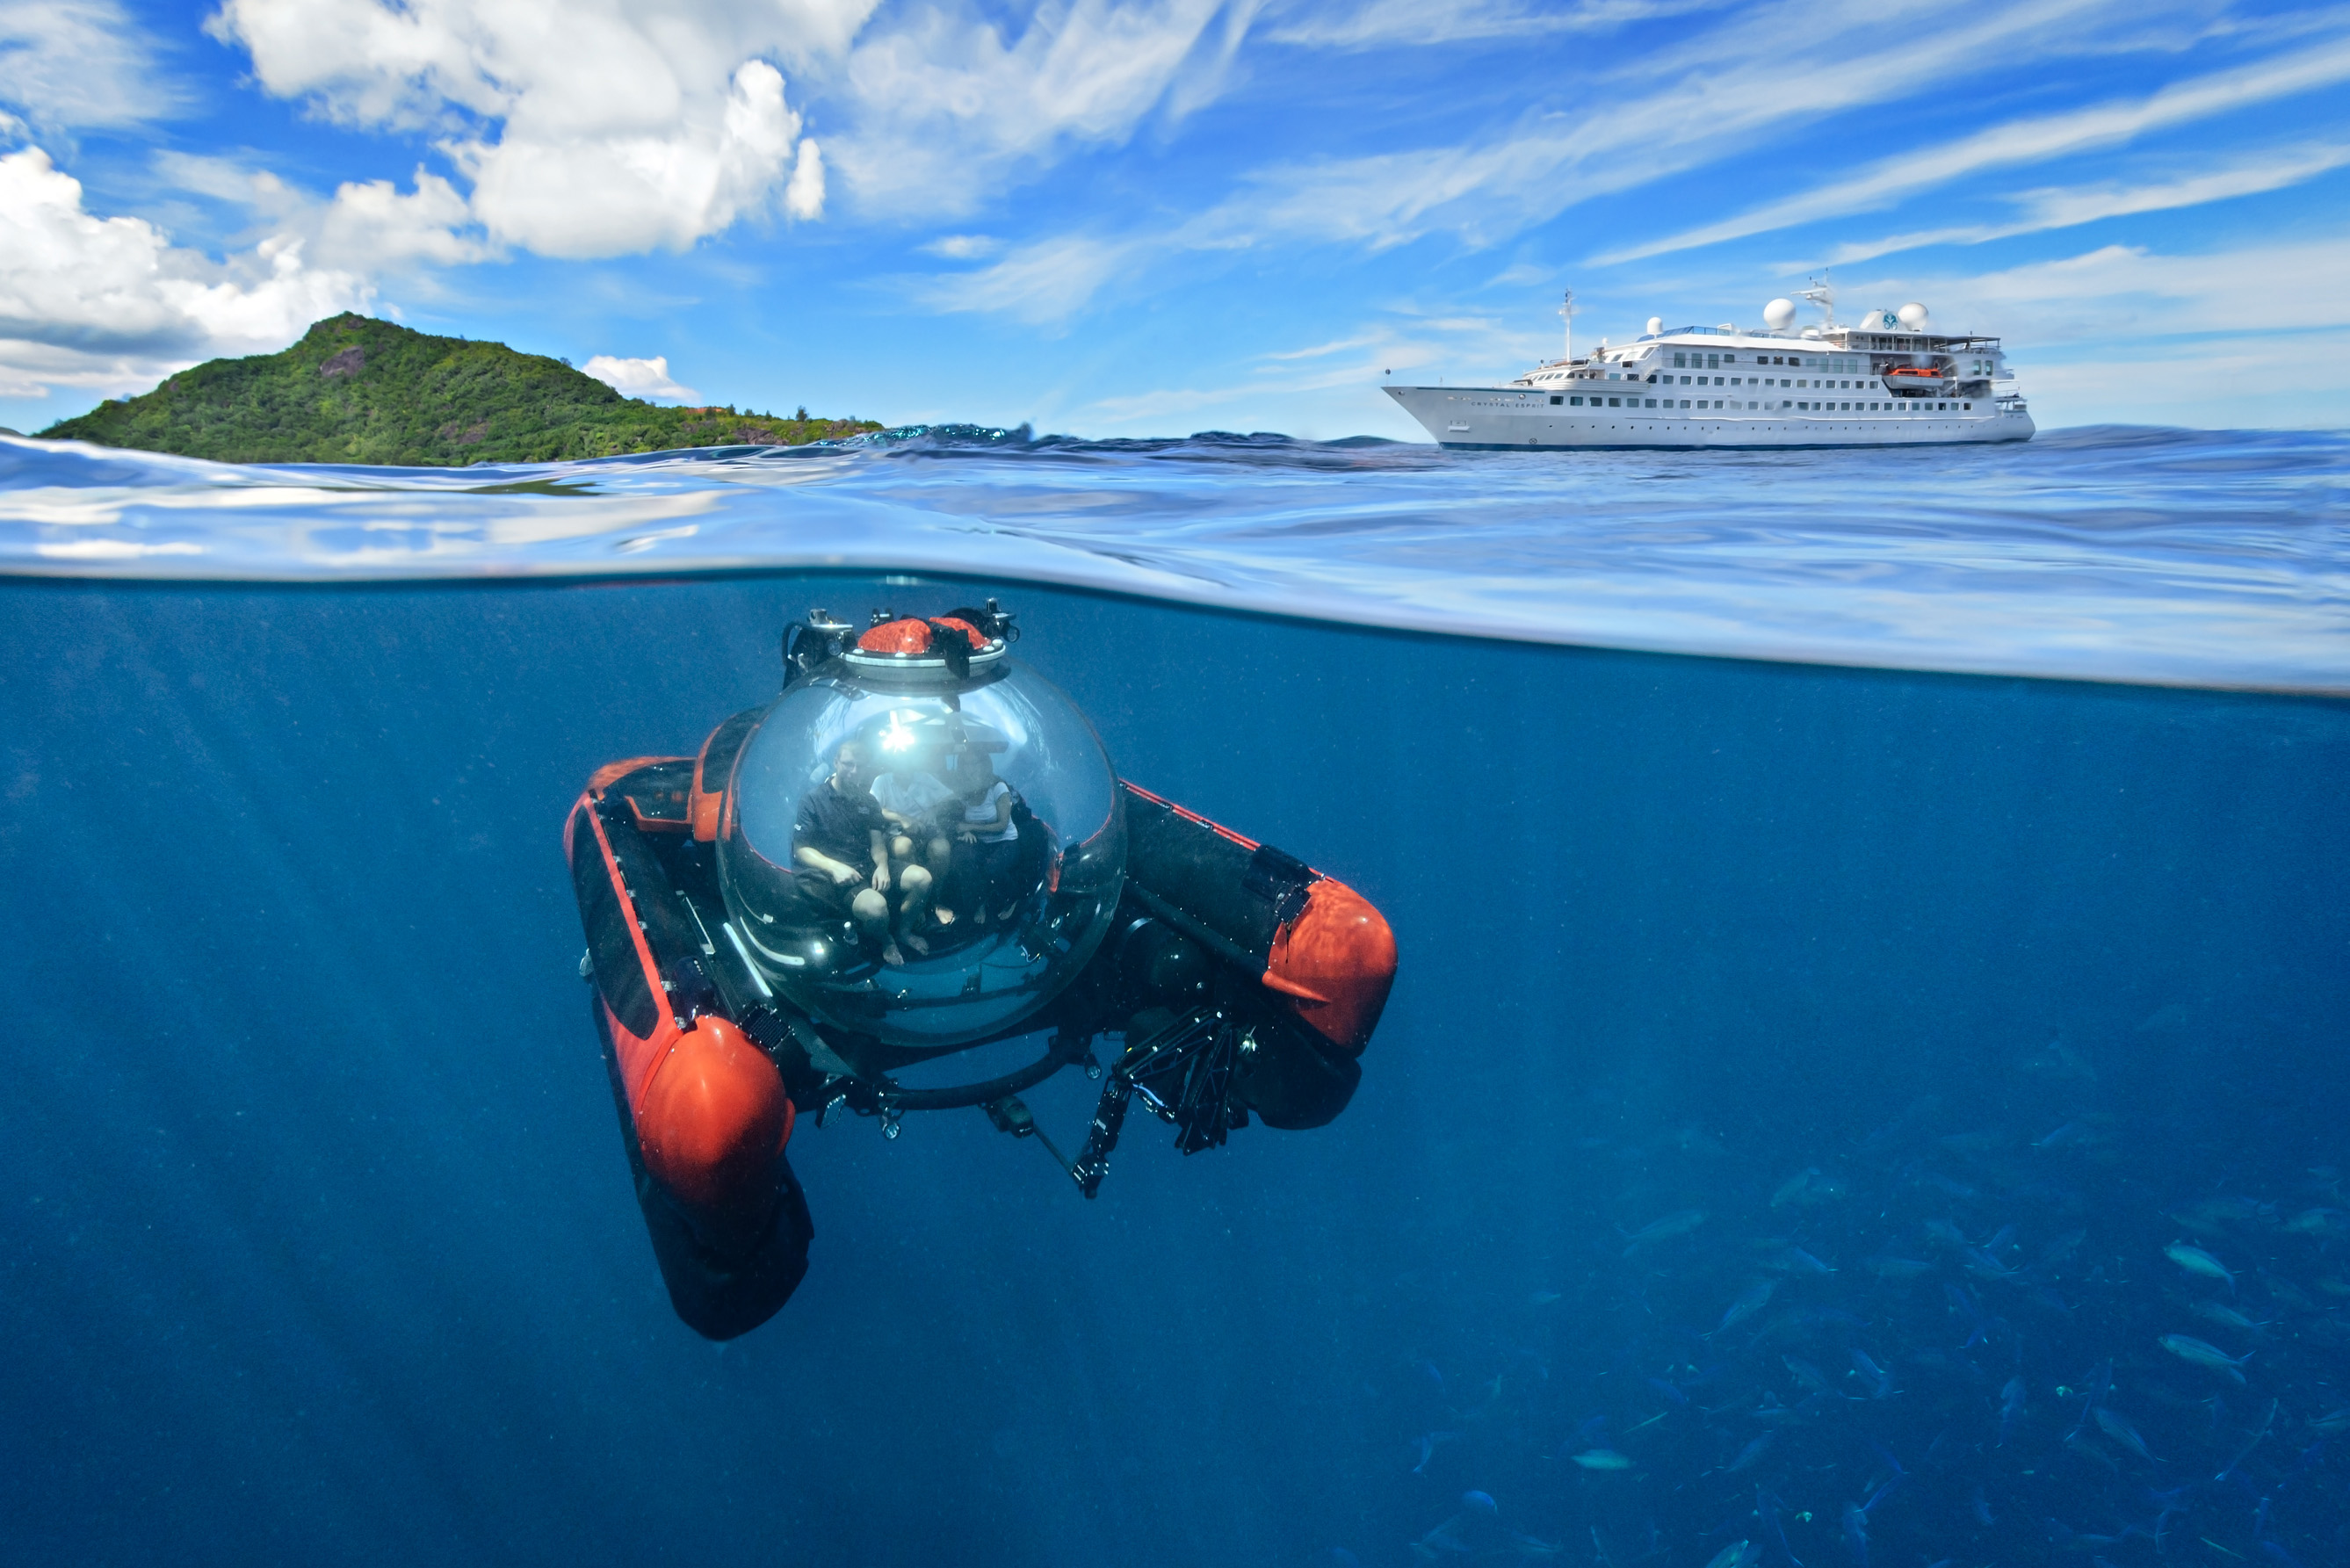 Offering approximately 30-minute expeditions for $599 per person, the Crystal submersible seats two guests and the vessel's operator, creating an especially exclusive atmosphere.